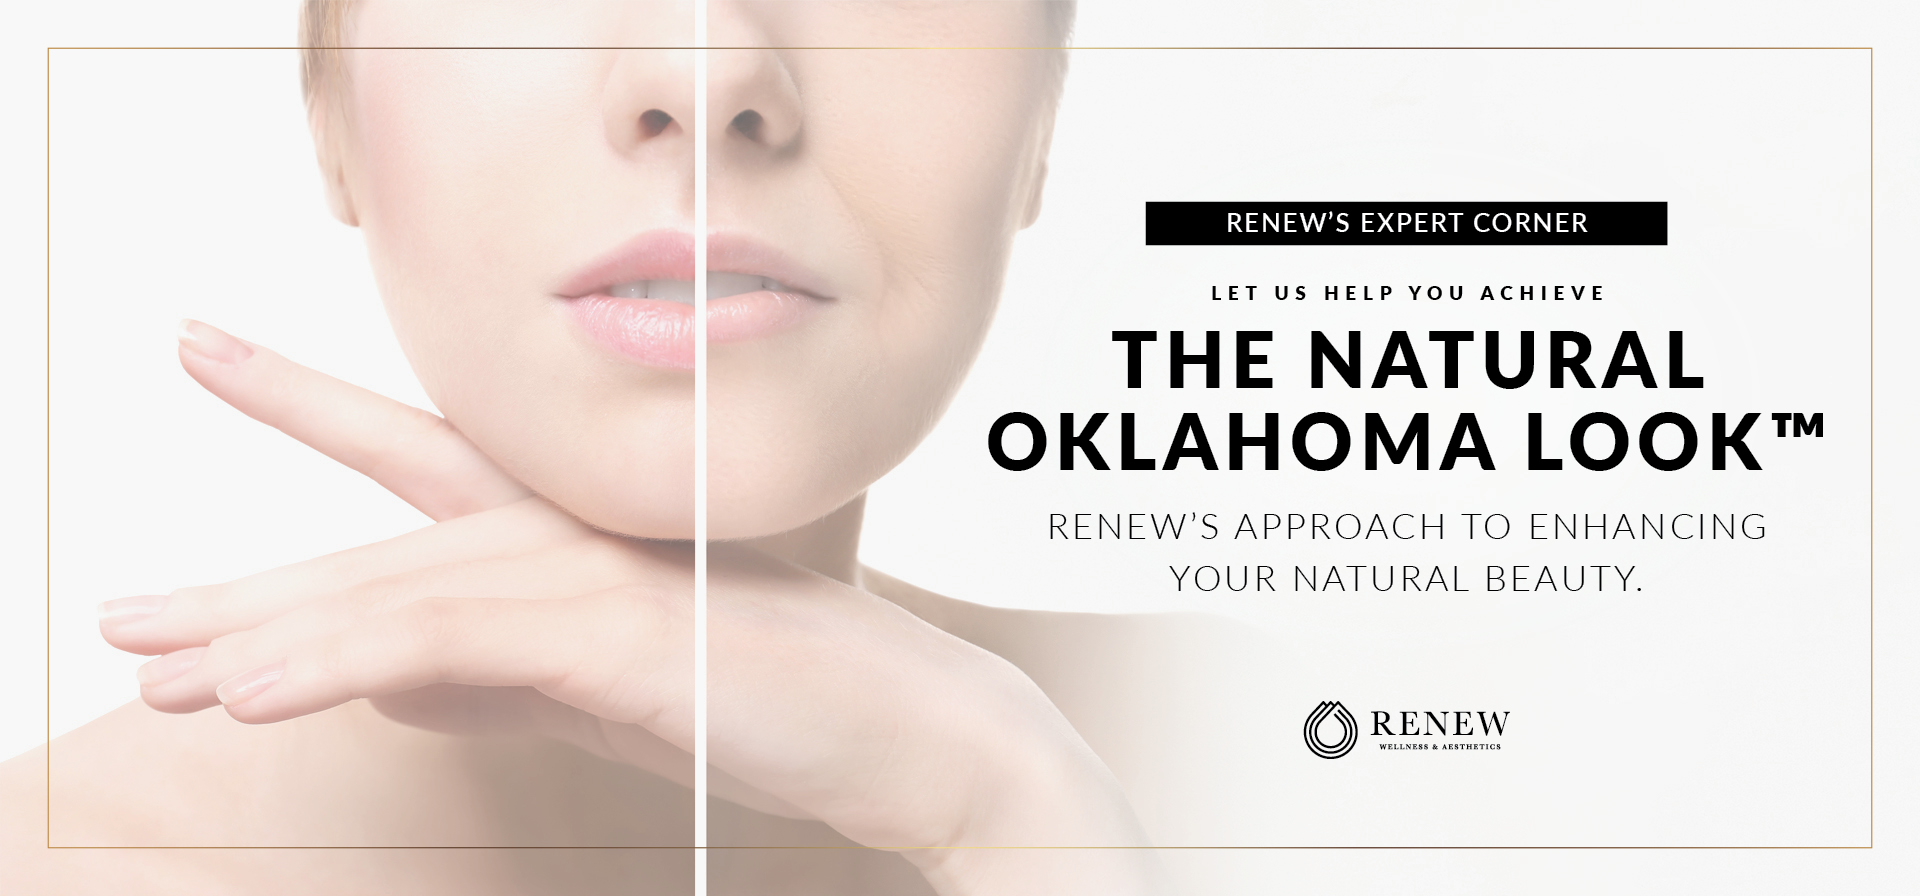 Renew The Natural Oklahoma Look